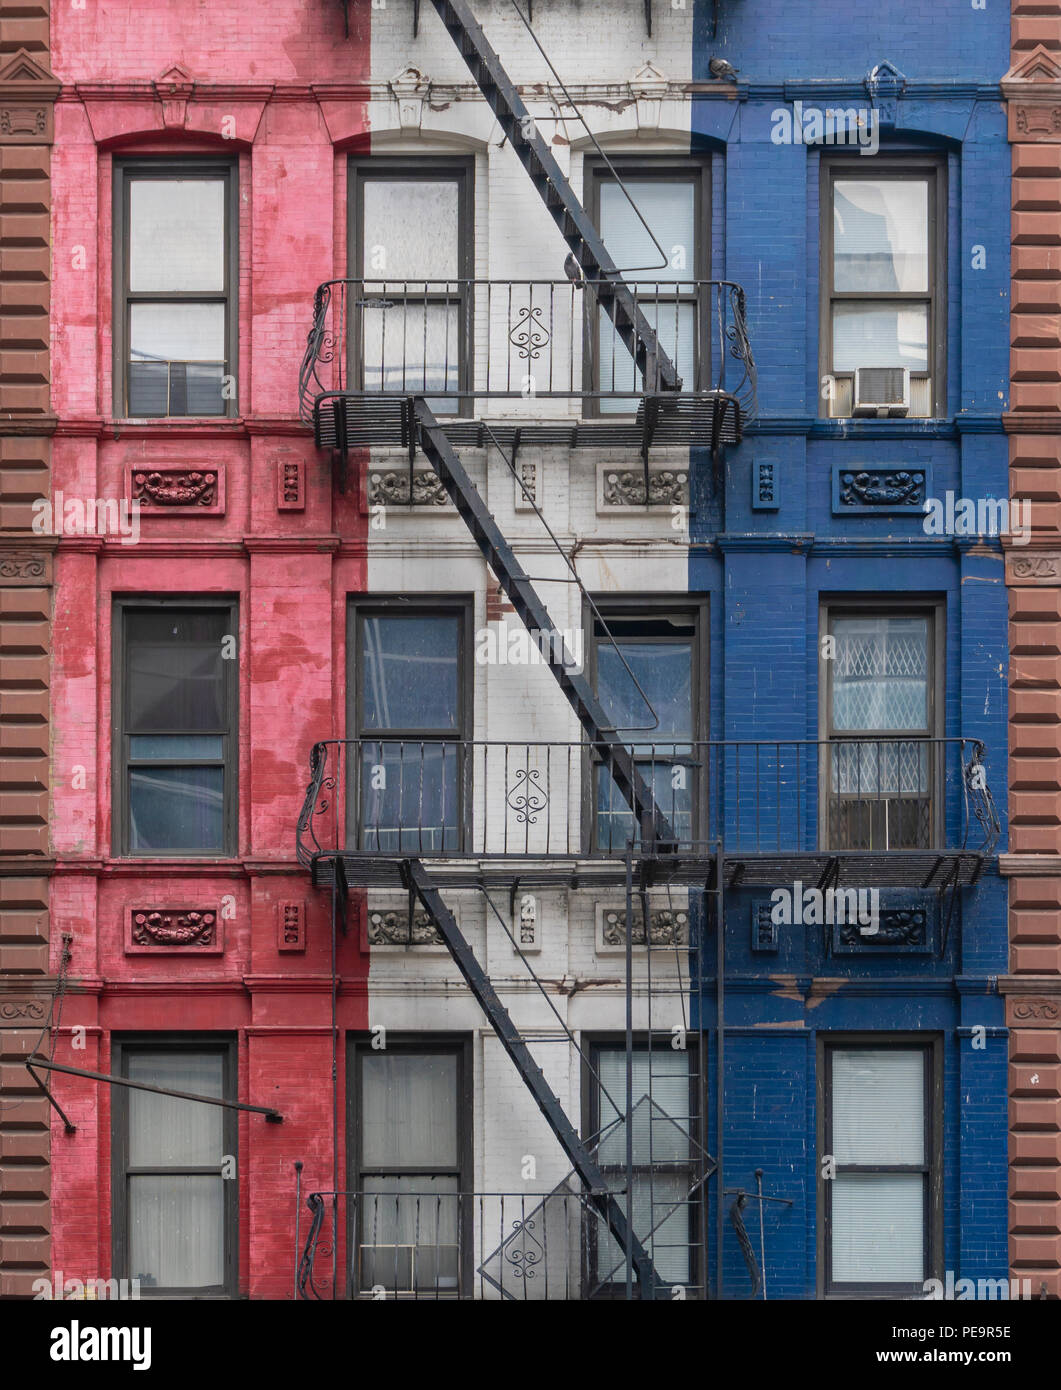 Fire escapes of a colorful building in New York City - Stock Image